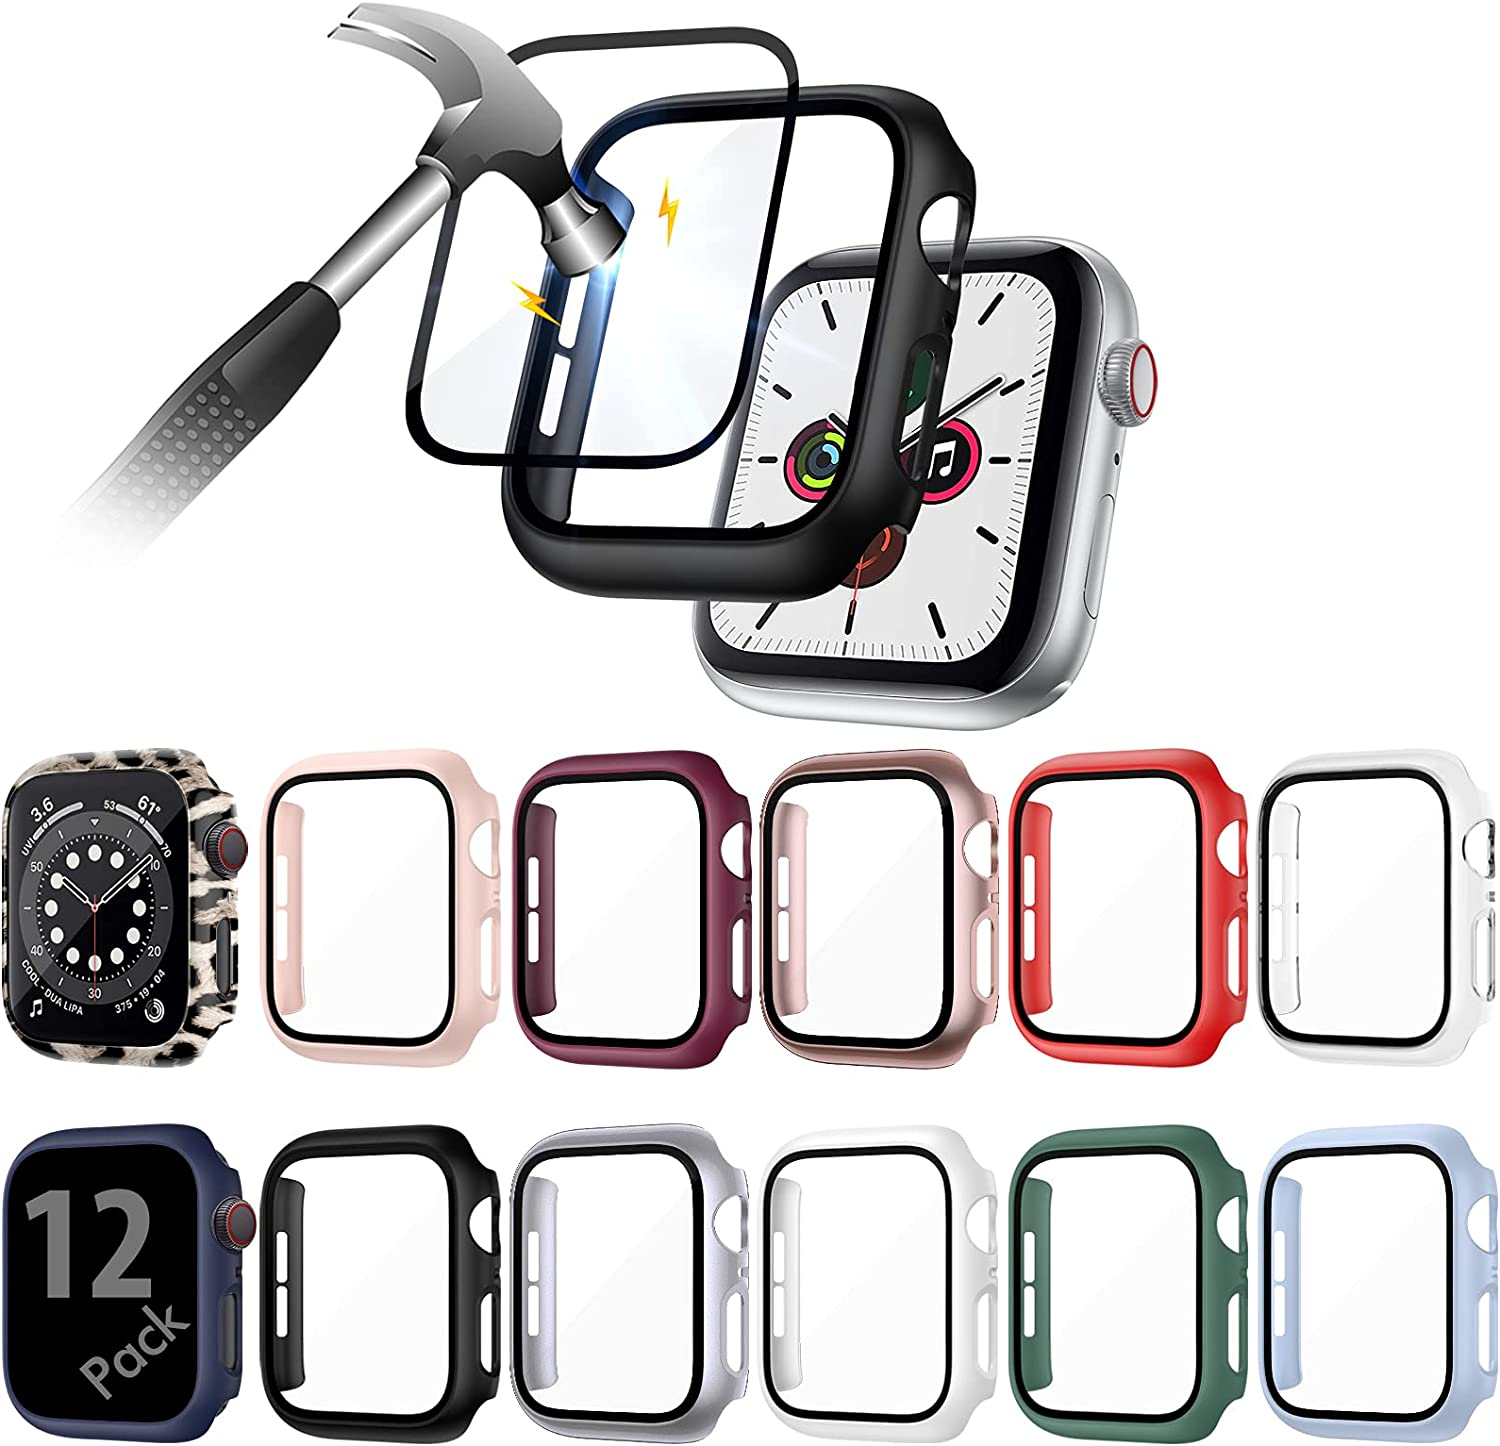 QIBOX 12 Pack Case Compatible with Apple Watch Series 6/5/4/SE 44mm with Tempered Glass Screen Protector, Full Hard PC Ultra-Thin Scratch Resistant Bumper Cover for Watch Accessories Women/Men